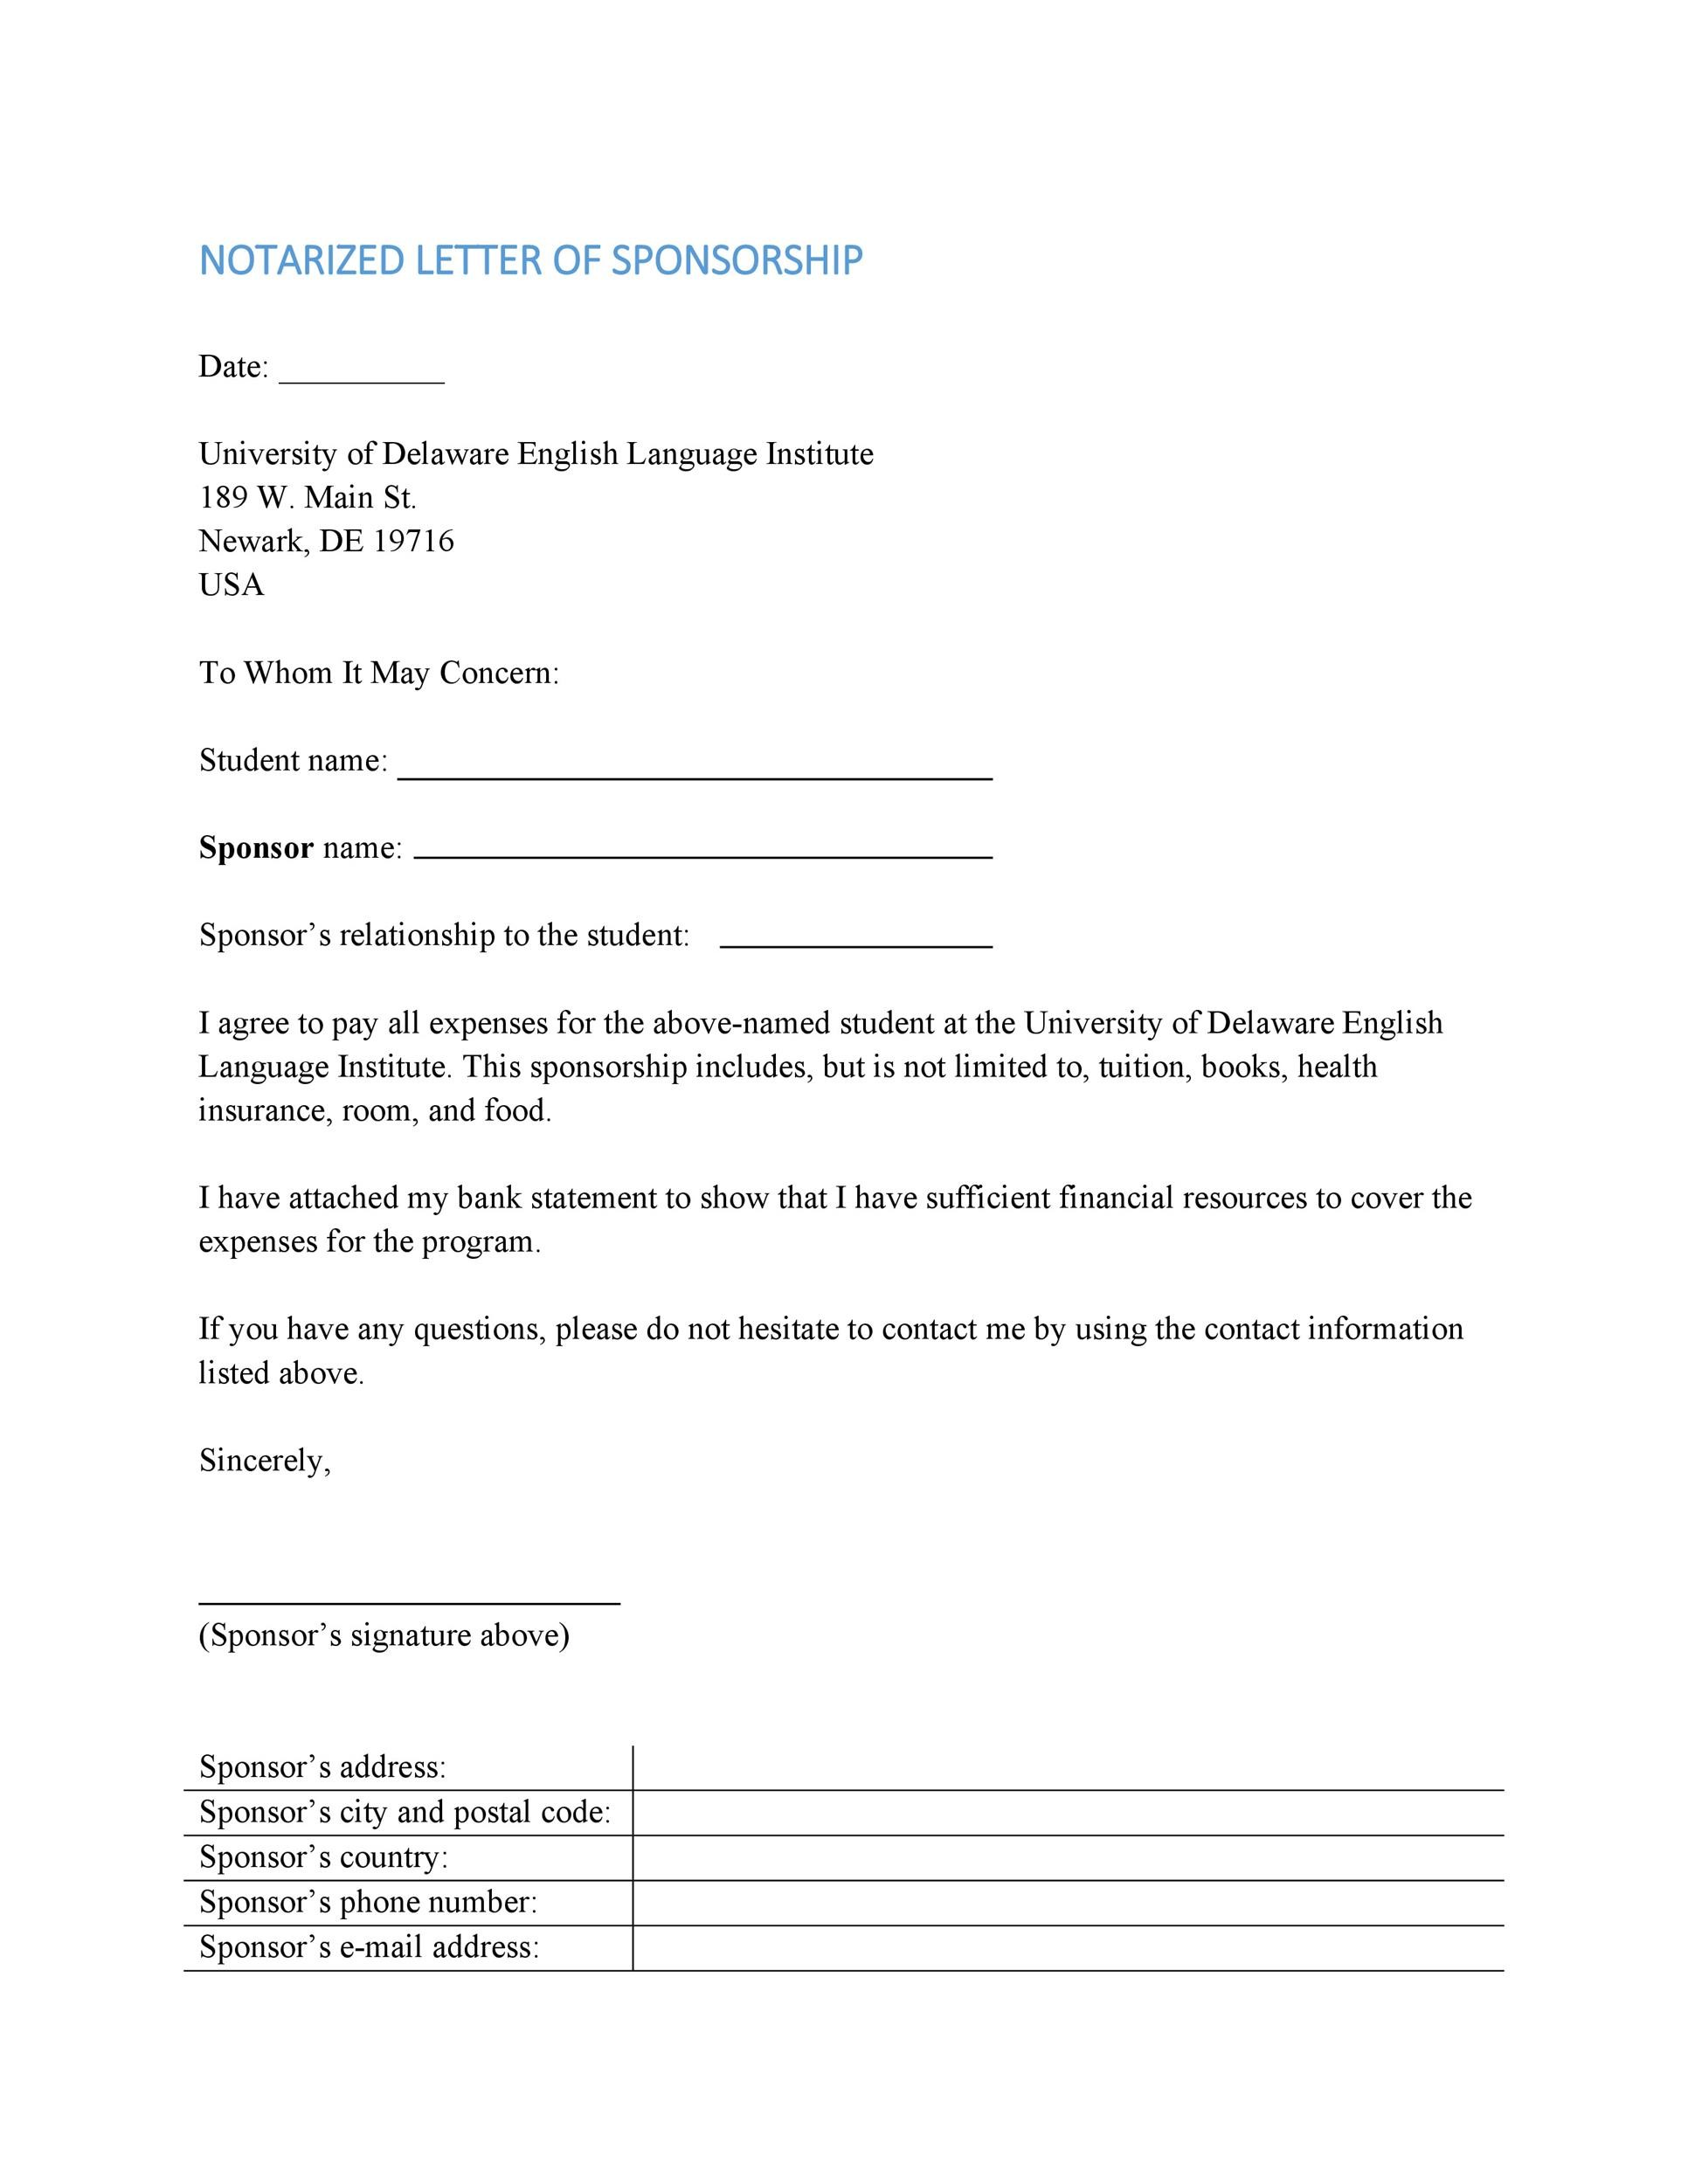 Free Notarized Letter Template 21